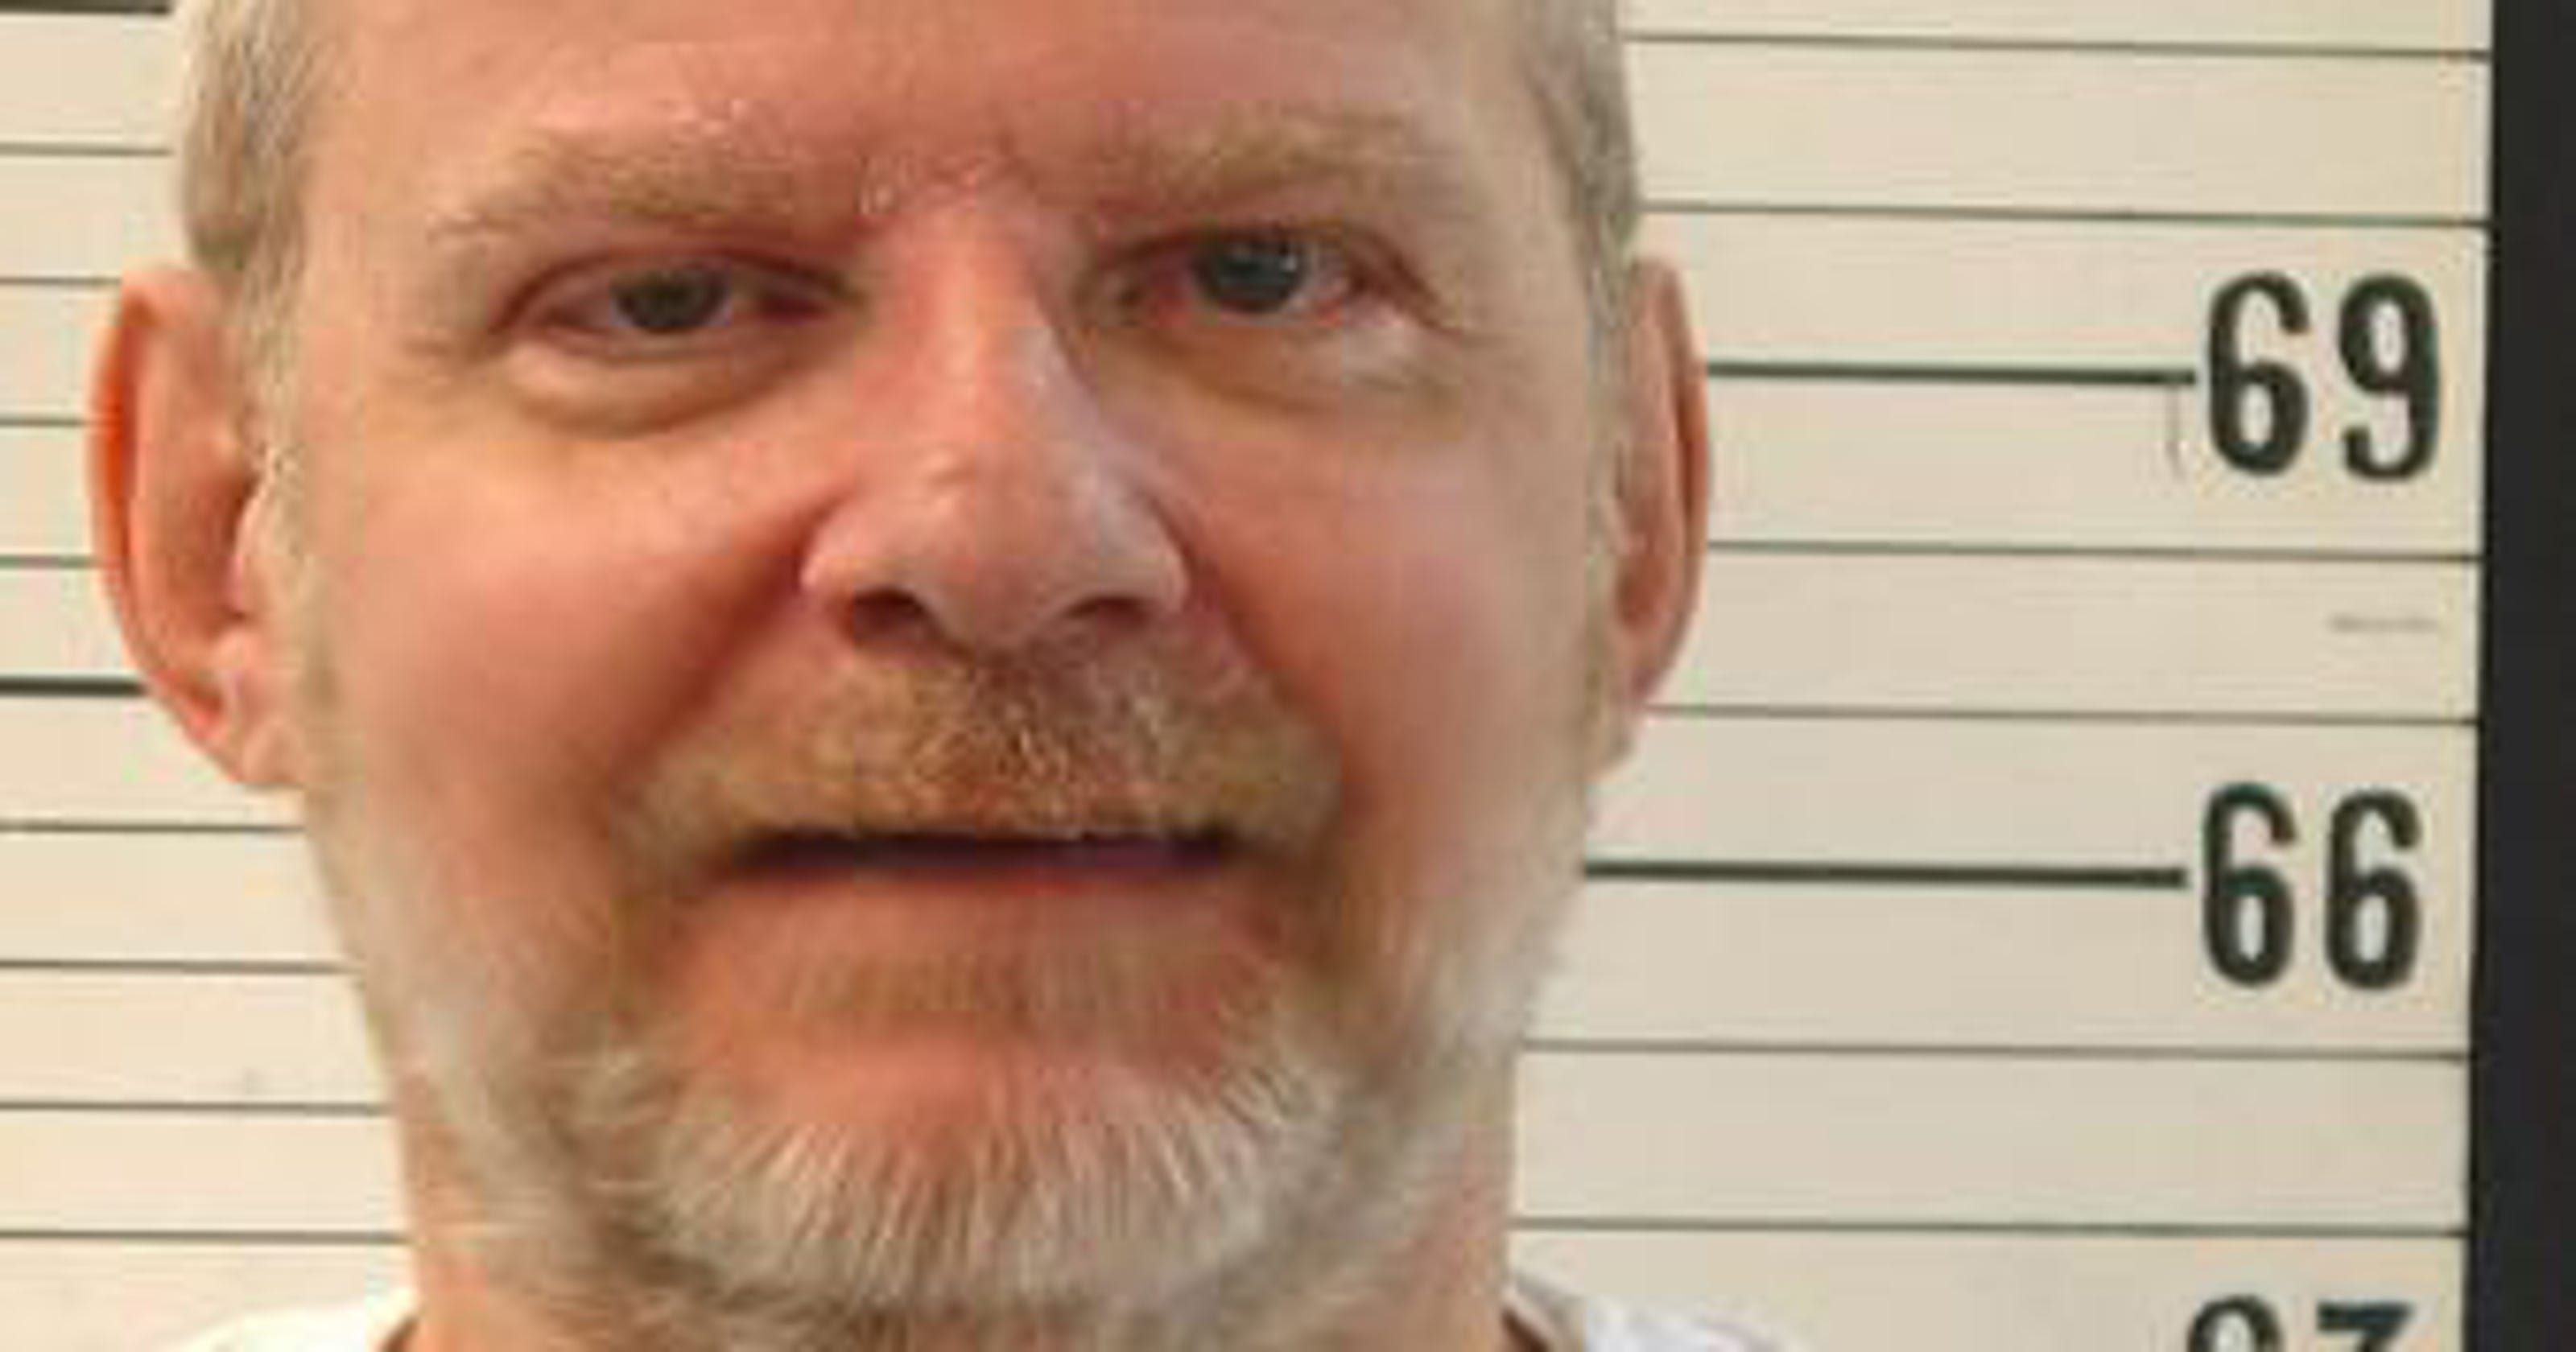 Tennessee execution: Stephen Michael West didn't commit